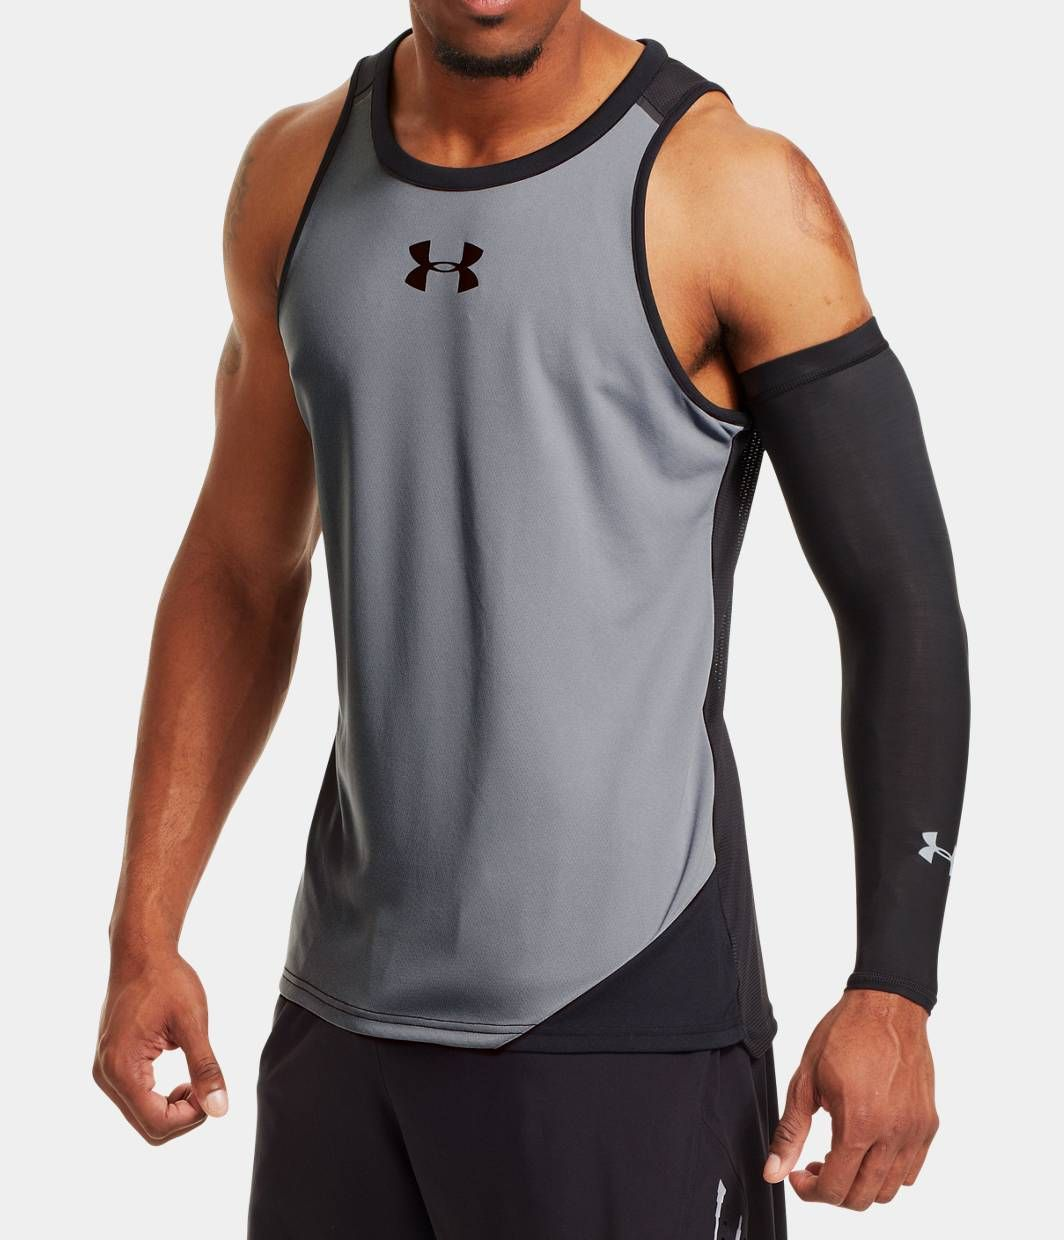 nike mens gym wear uk ltd